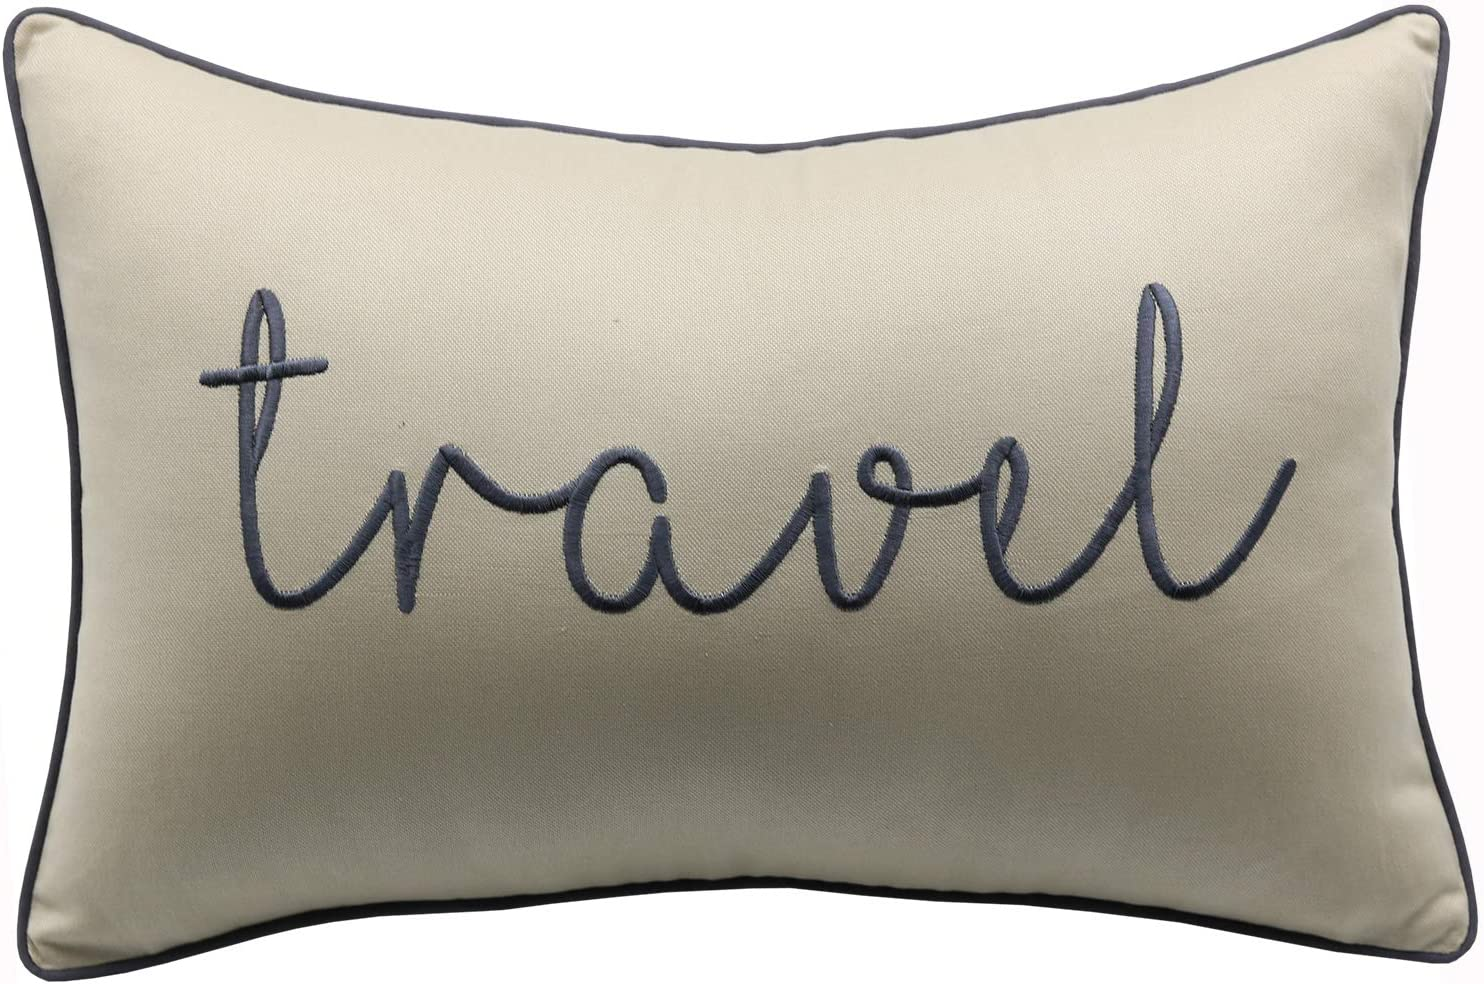 YugTex Travel Sentiment Cotton Embroidered Decorative Lumbar Accent Throw Pillow Cover - Gift for Traveler - 12x18 Inches, Natural